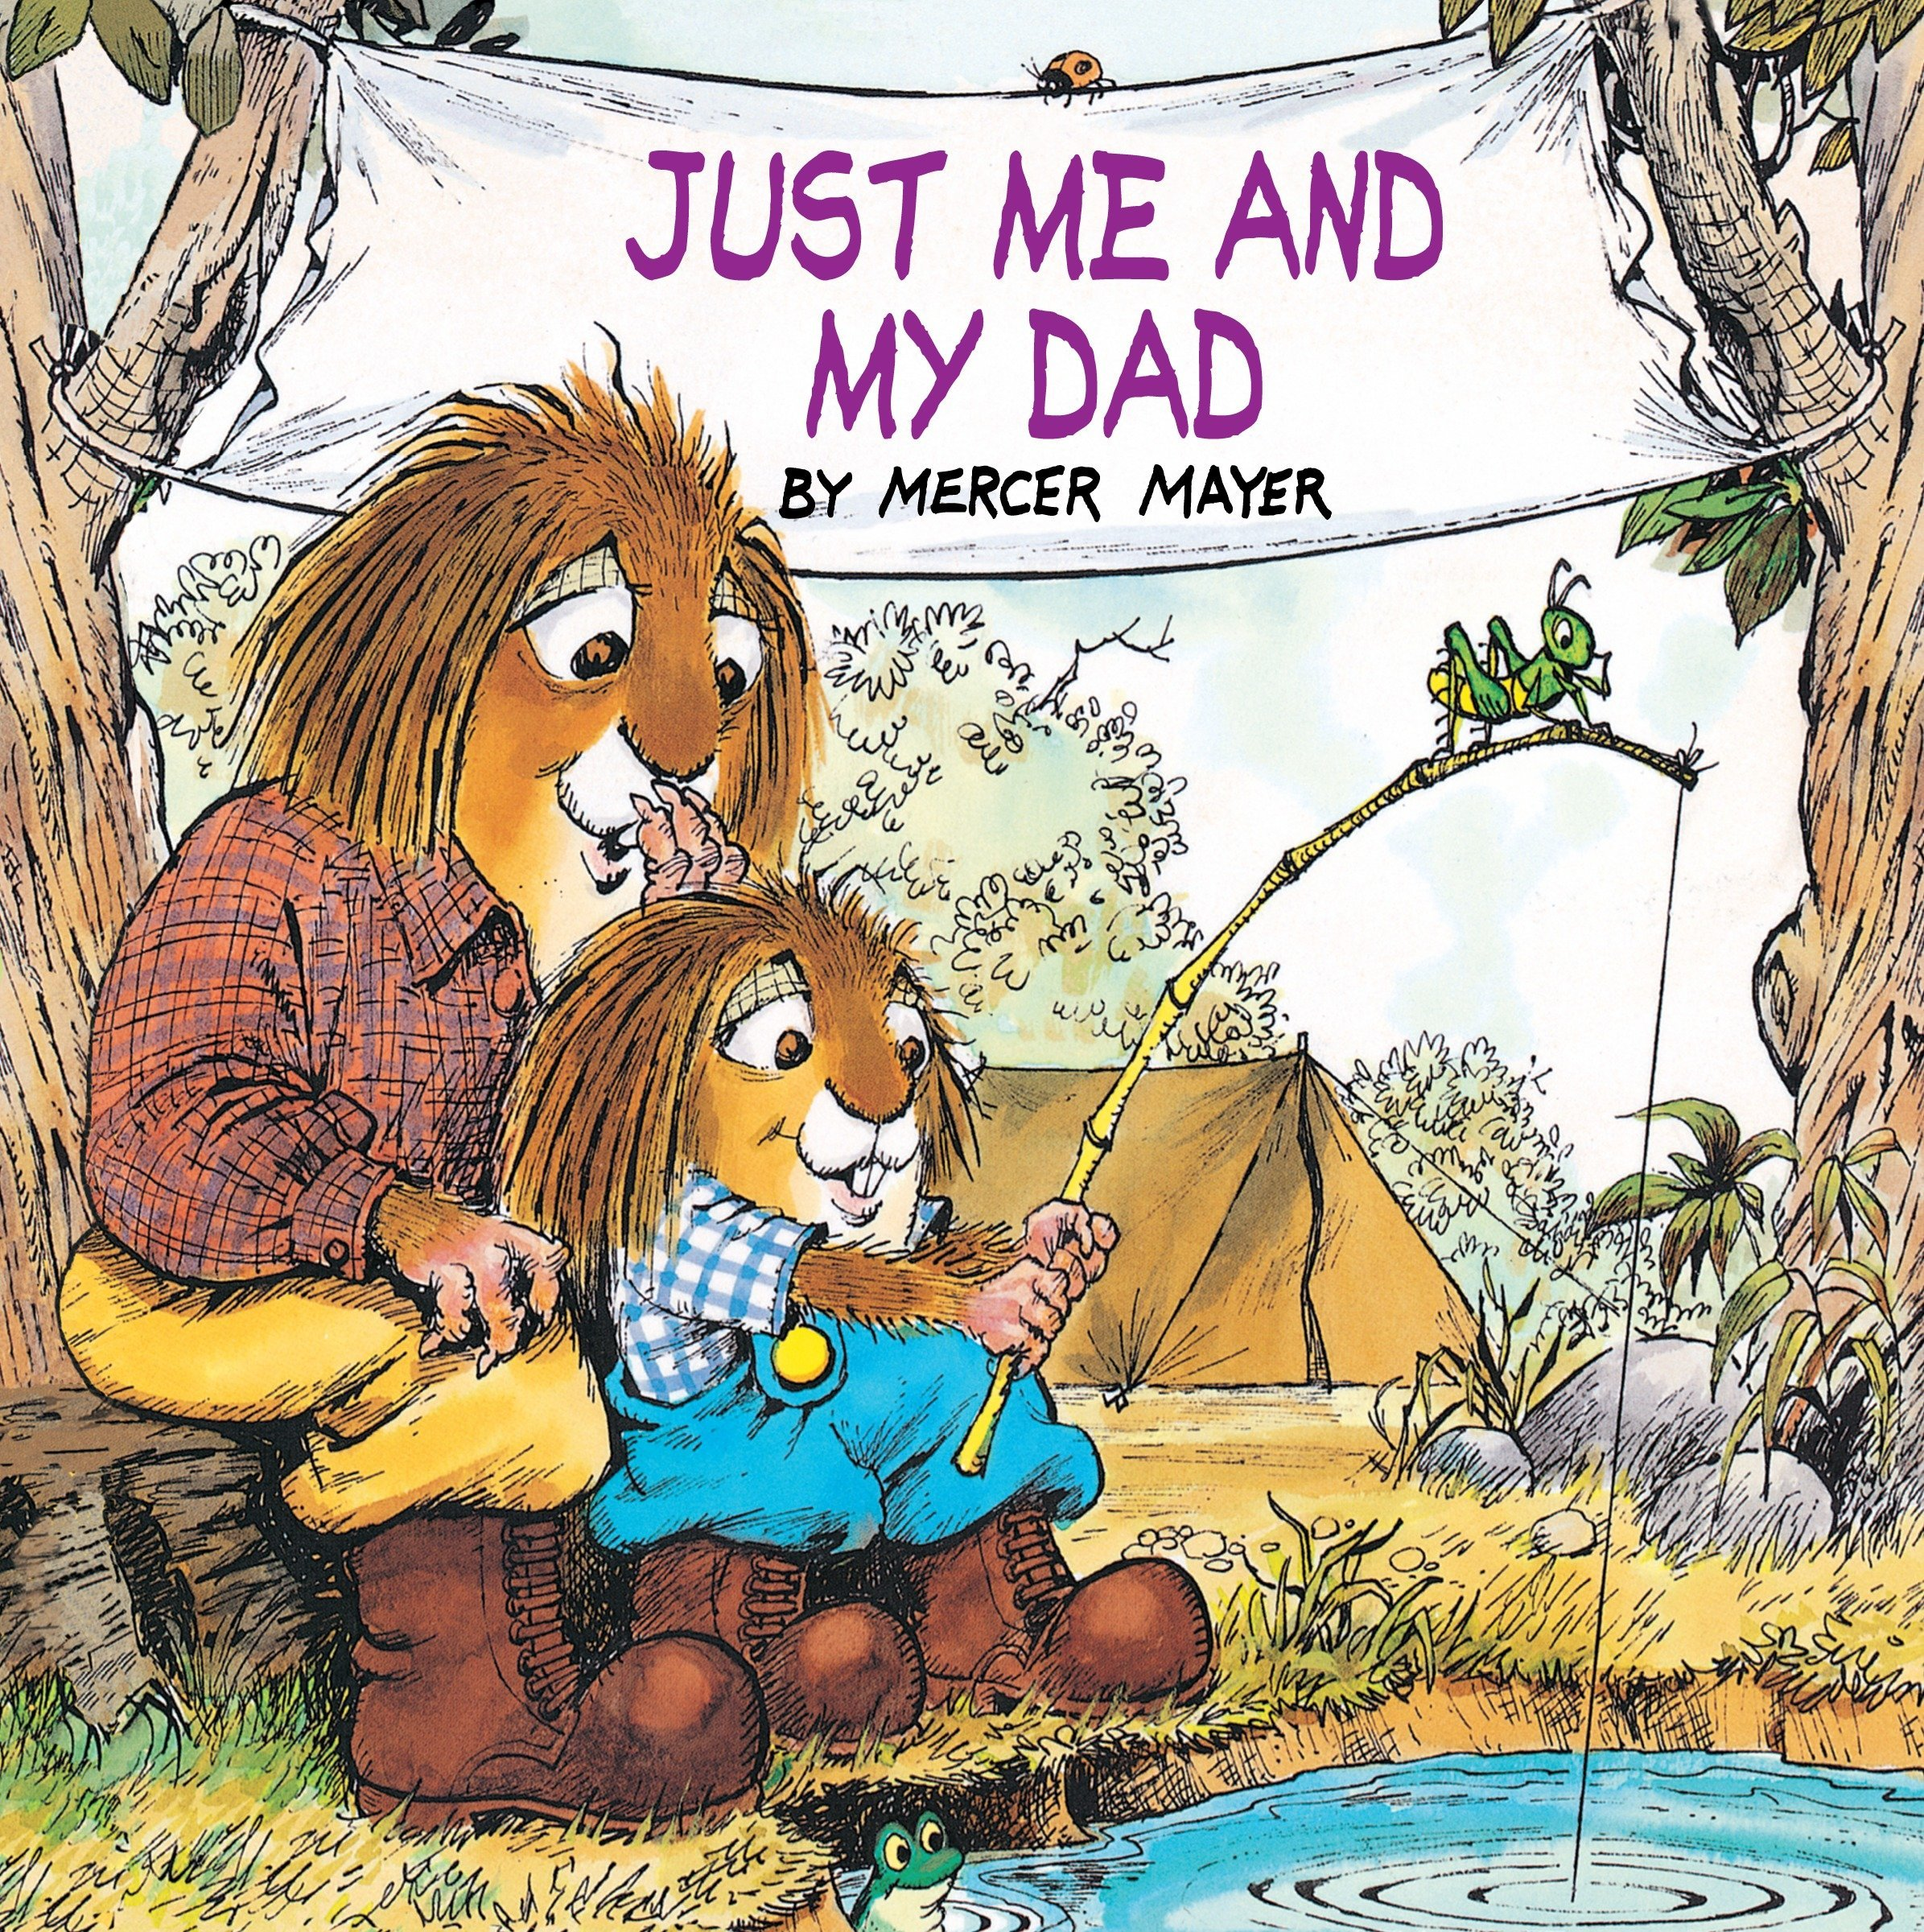 the best Father's Day Picture Books - Just Me and My Dad Little Critter.jpg